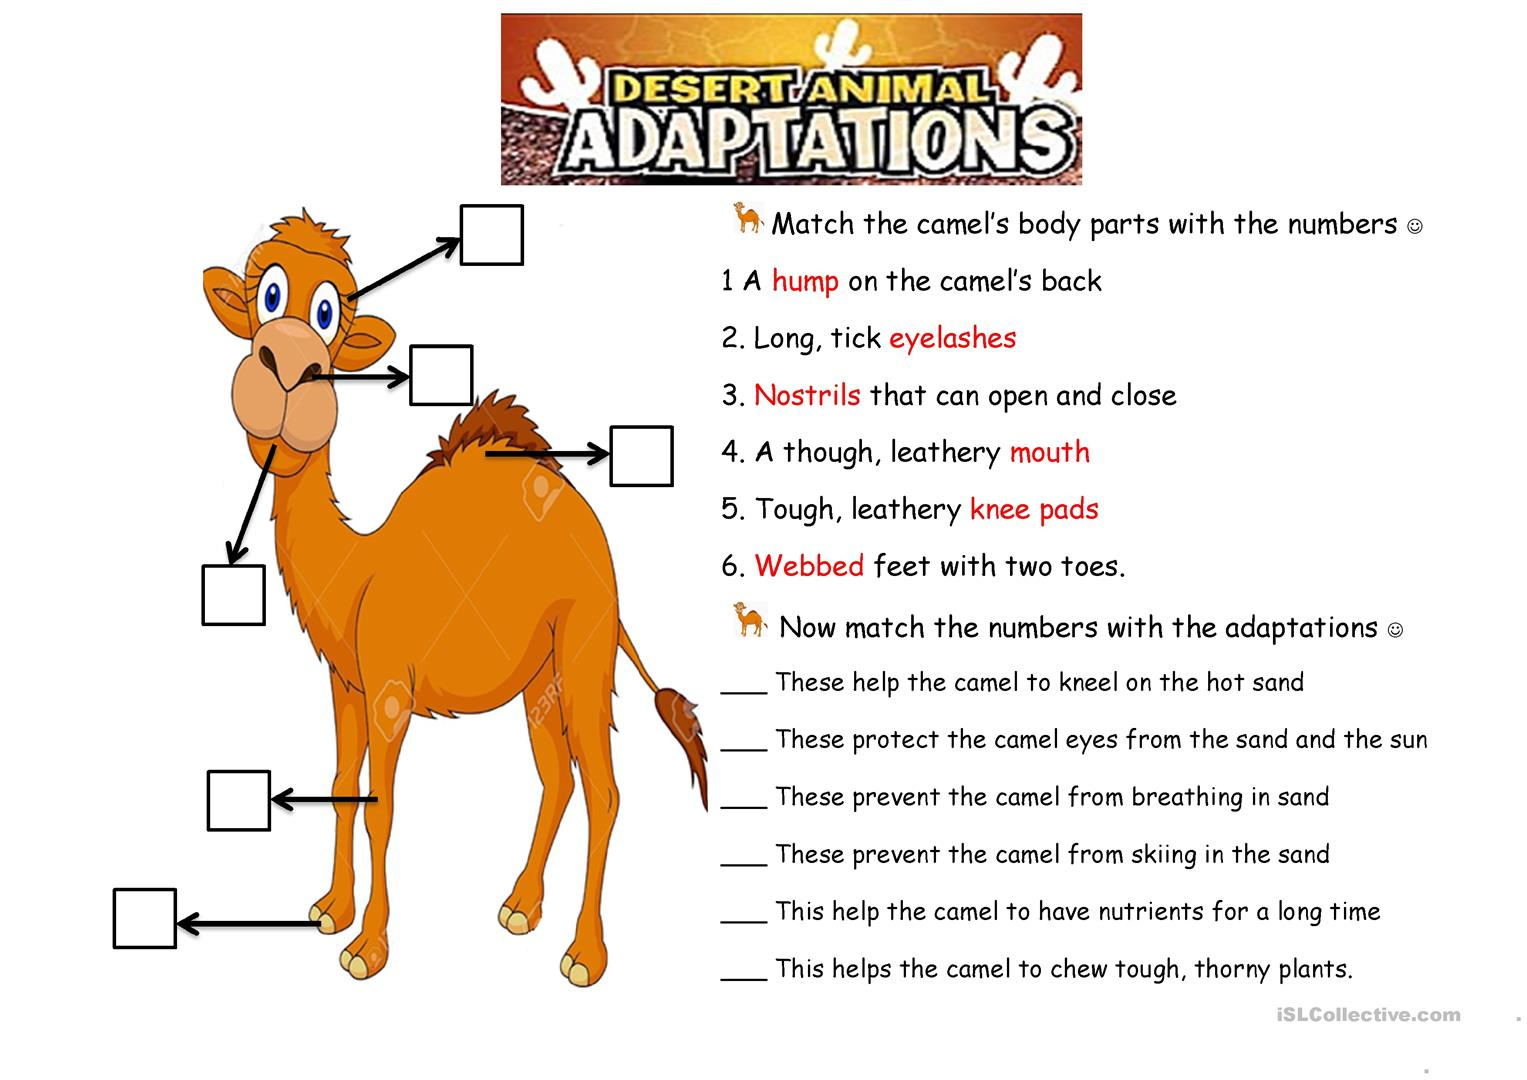 The Camel. Animals Adaptations Worksheet - Free Esl Printable | Free Printable Worksheets Animal Adaptations